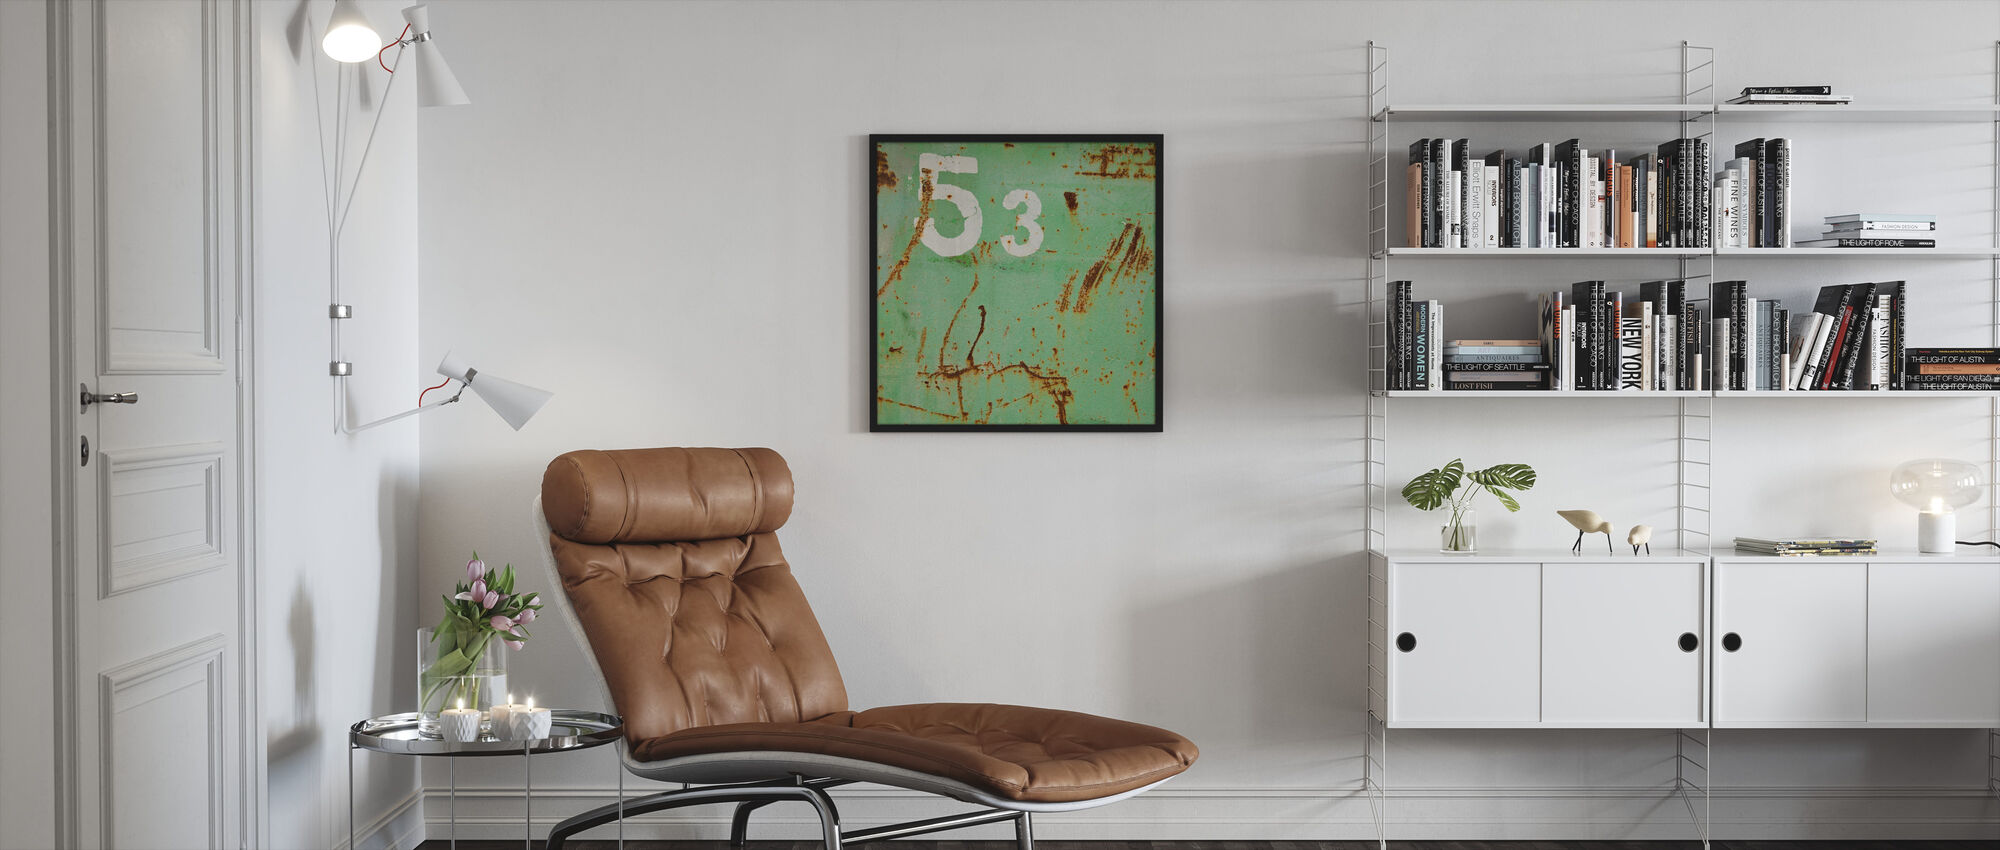 Grunge Fifty-three - Framed print - Living Room